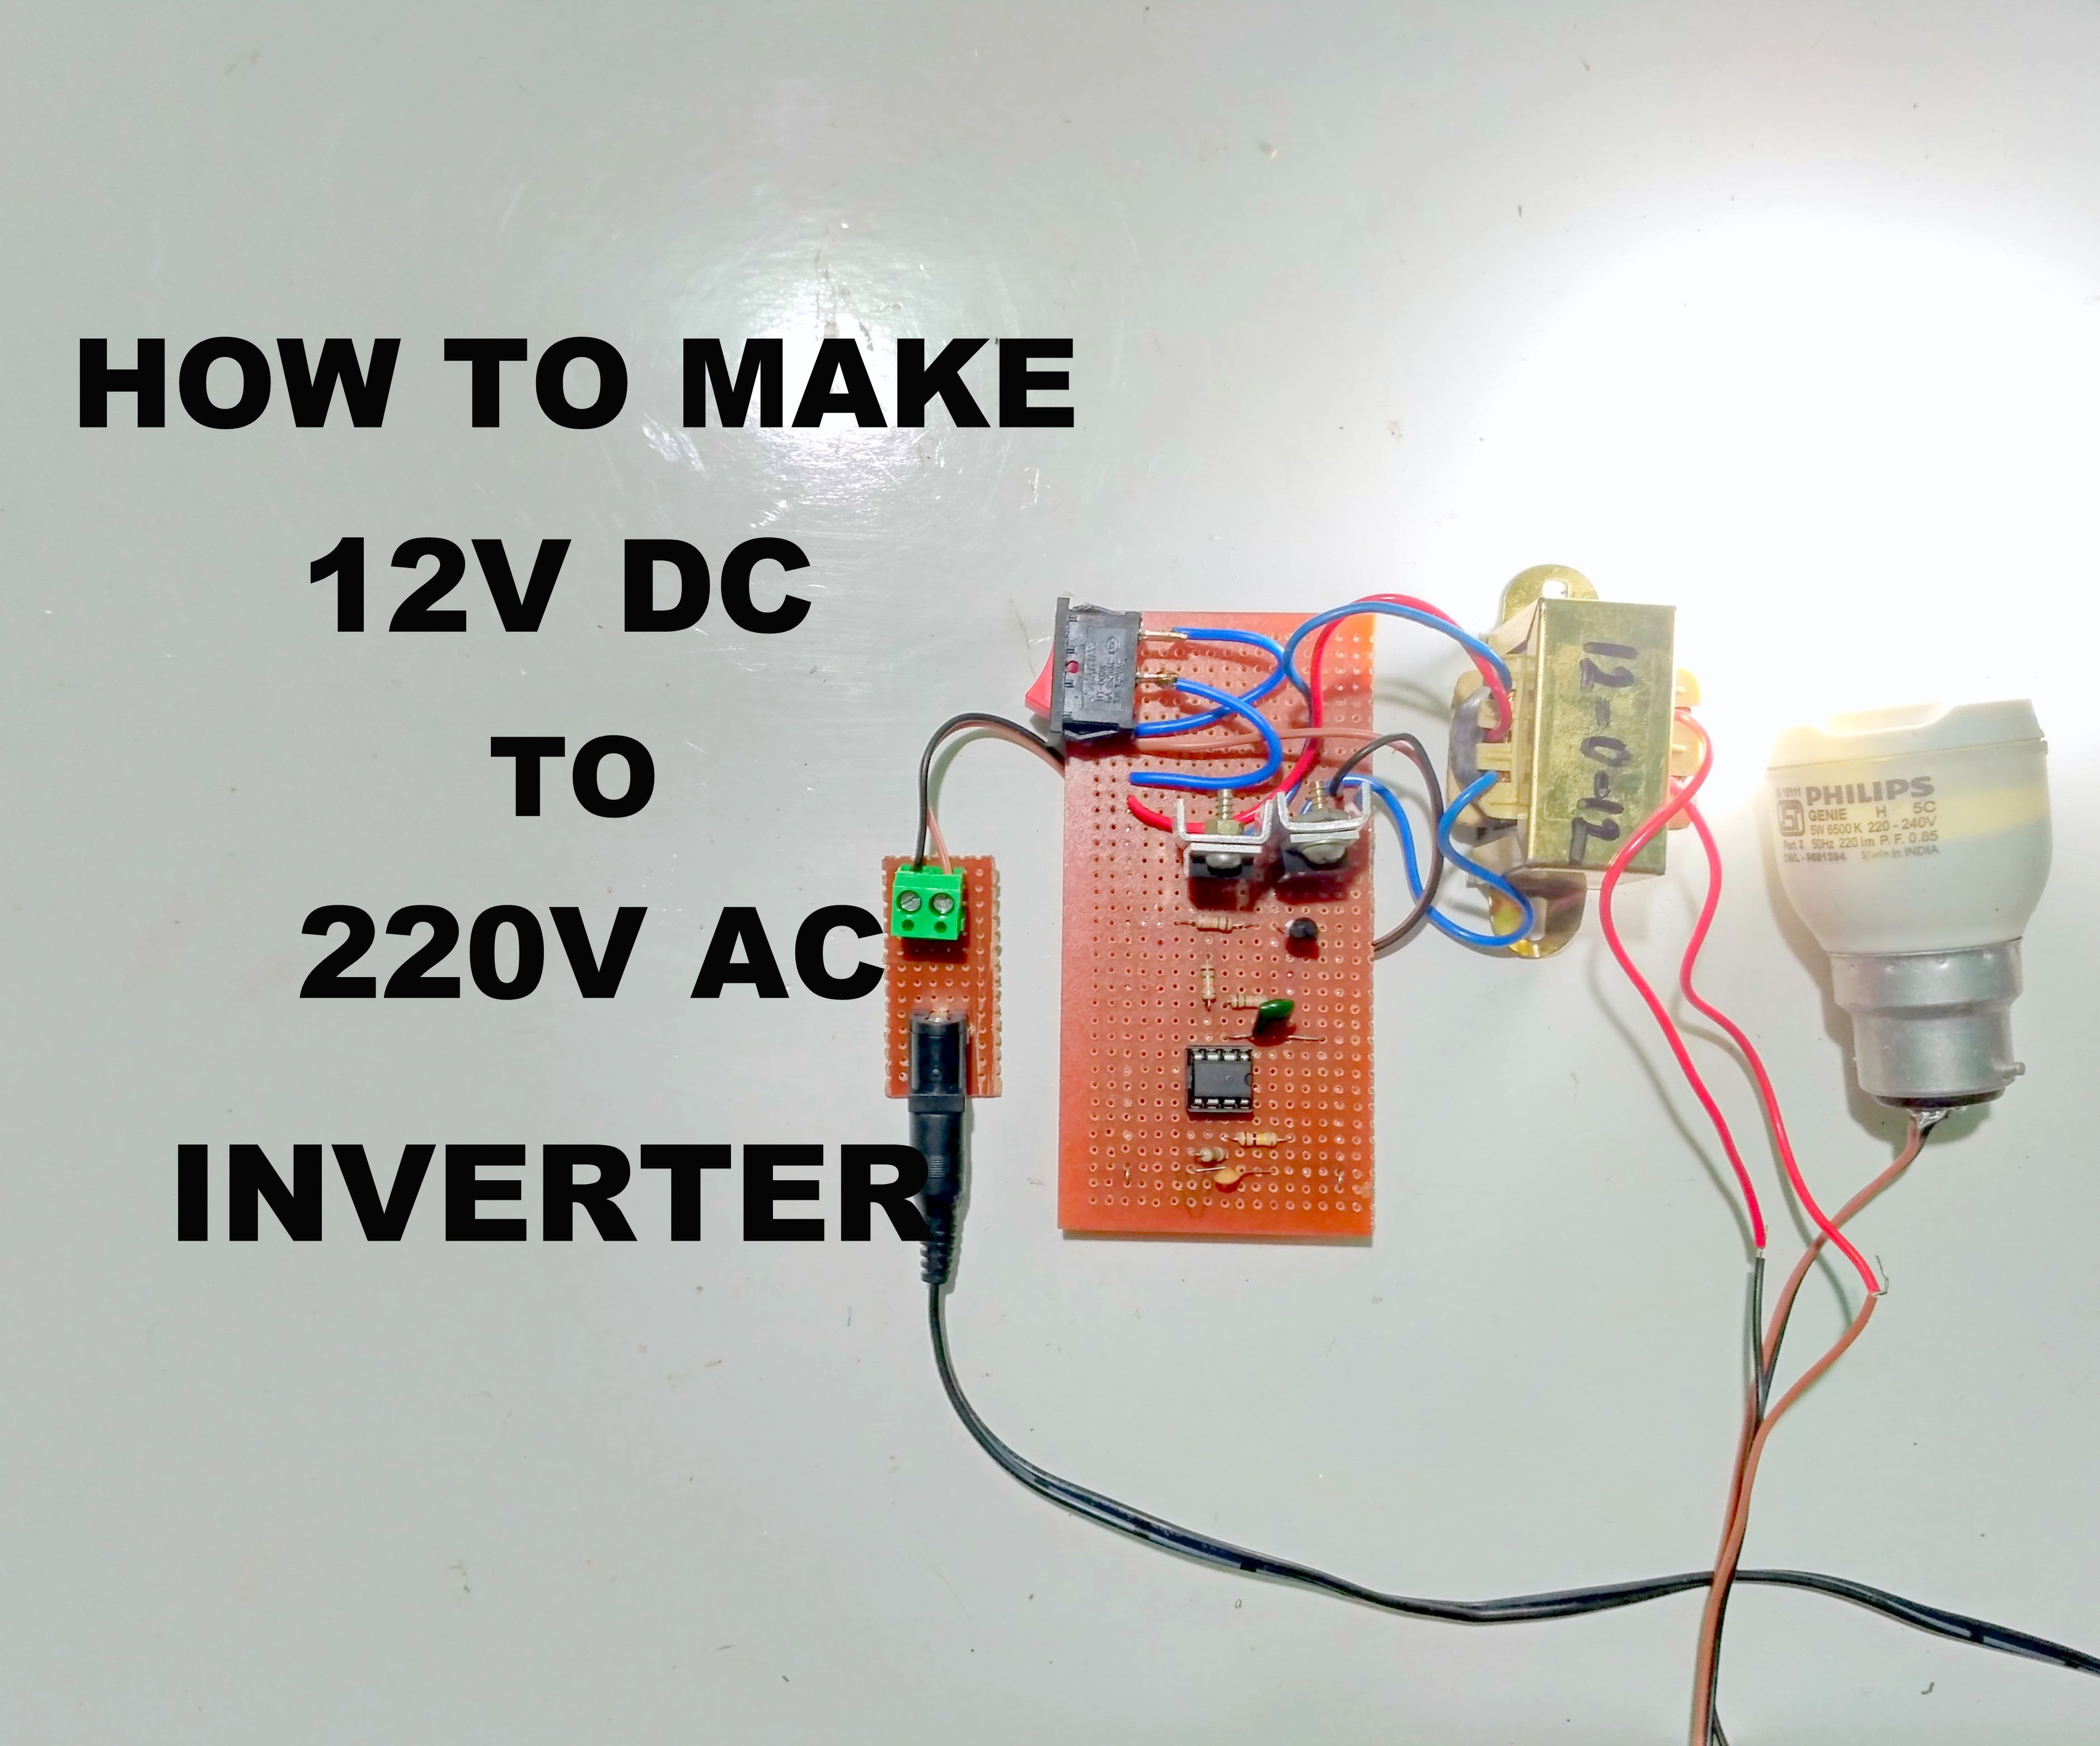 How To Make 12v Dc To 220v Ac Inverter 4 Steps With Pictures Instructables